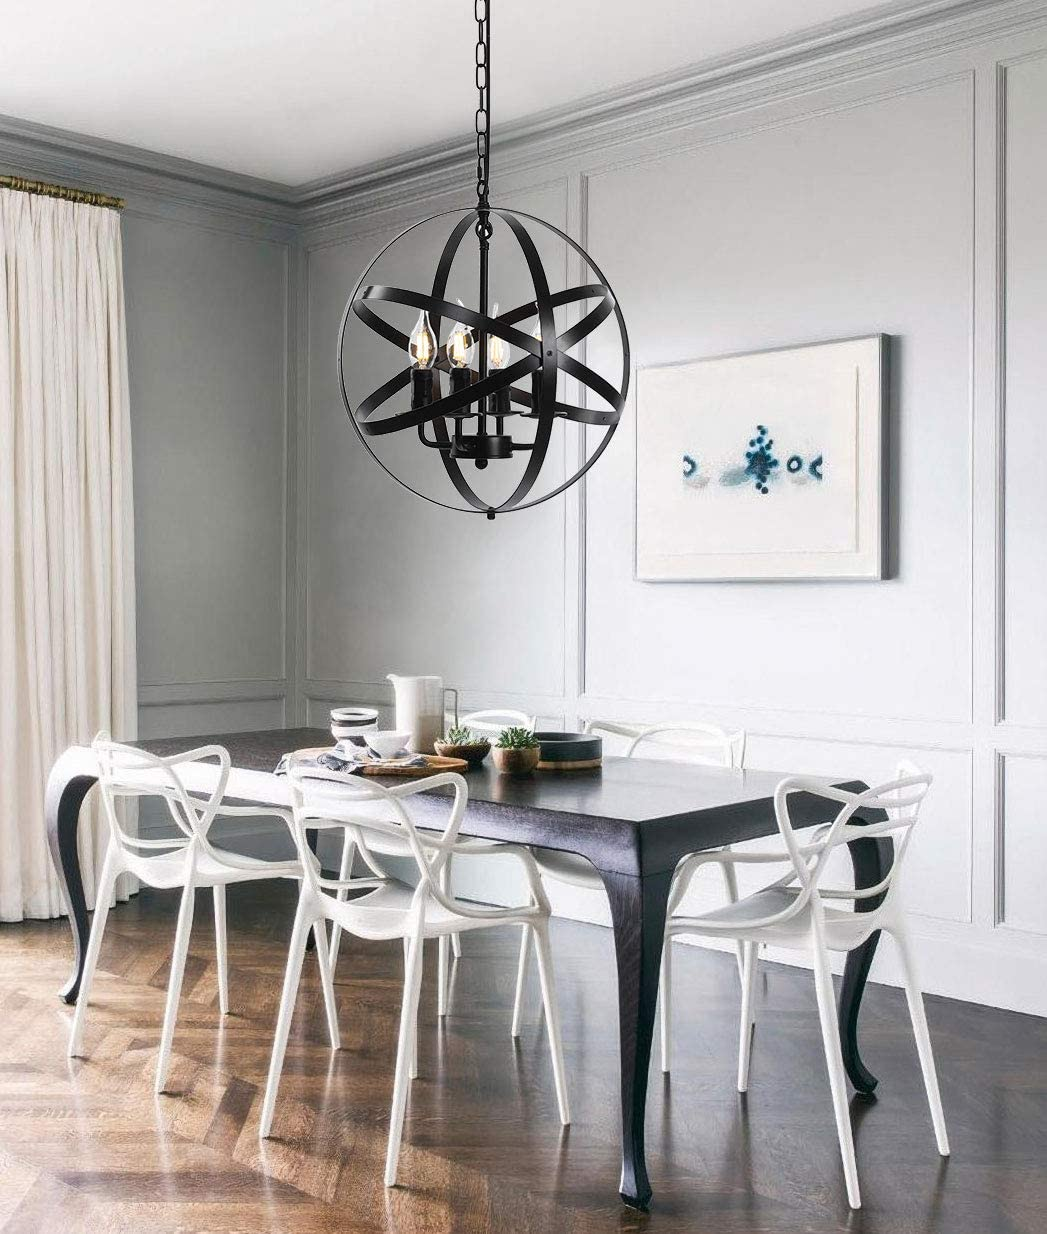 Z-LIGHT Chandeliers Farmhouse Rustic Industrial Pendant Lighting Fixture with Metal Spherical Shade Black Chandelier for Dining Room, Kitchen Island, Foyer